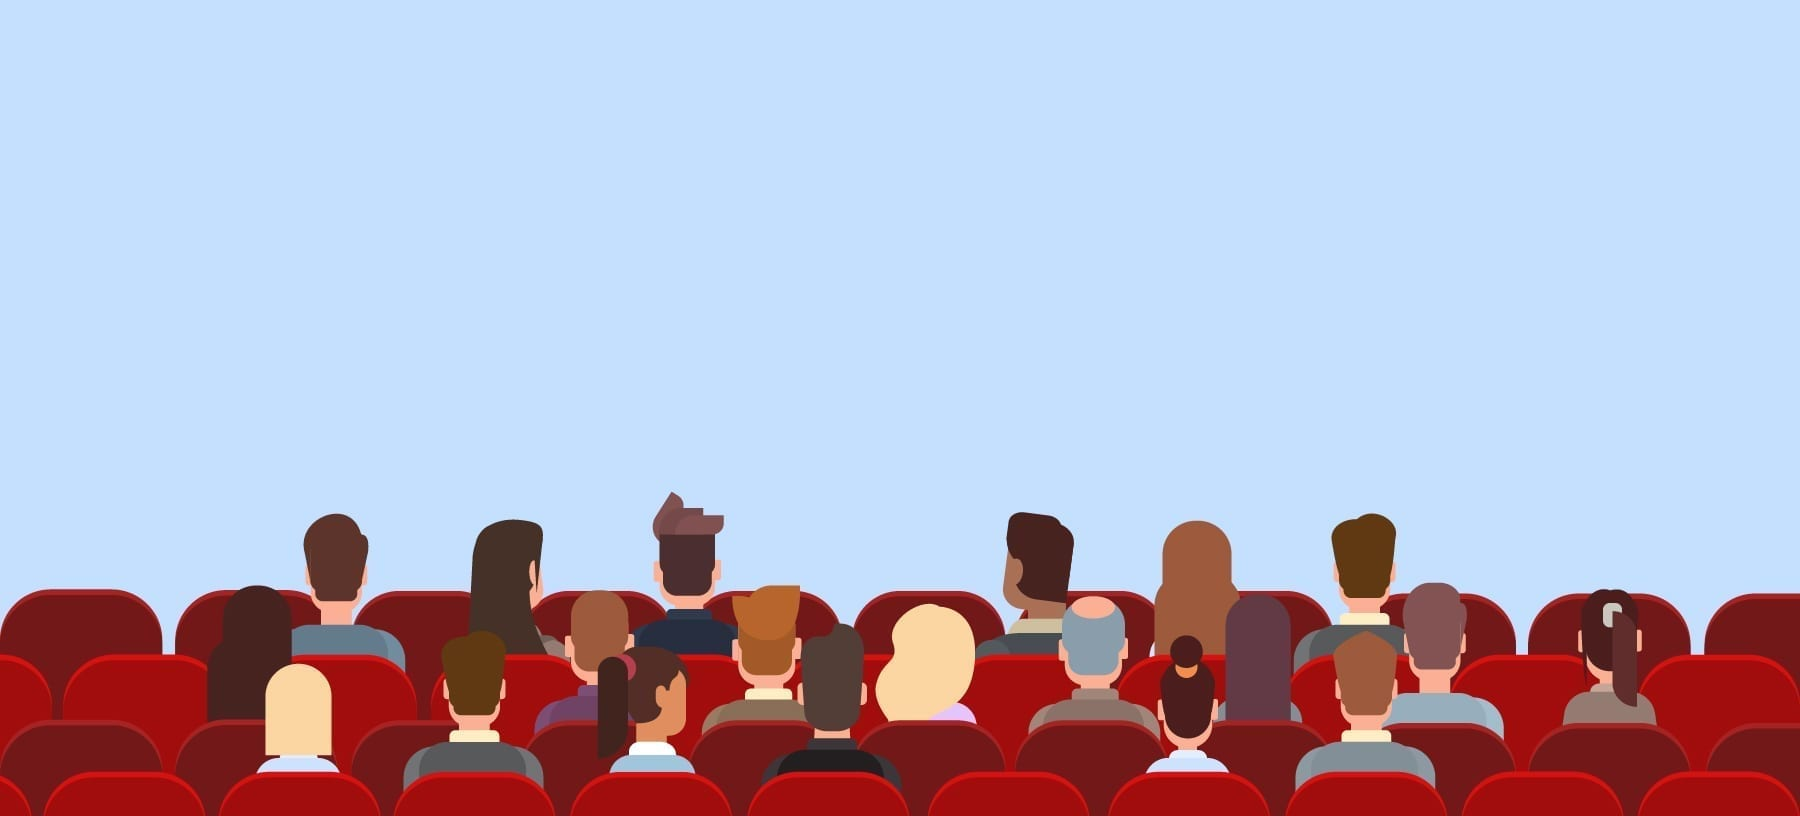 5 simple tips to keep your audience engaged